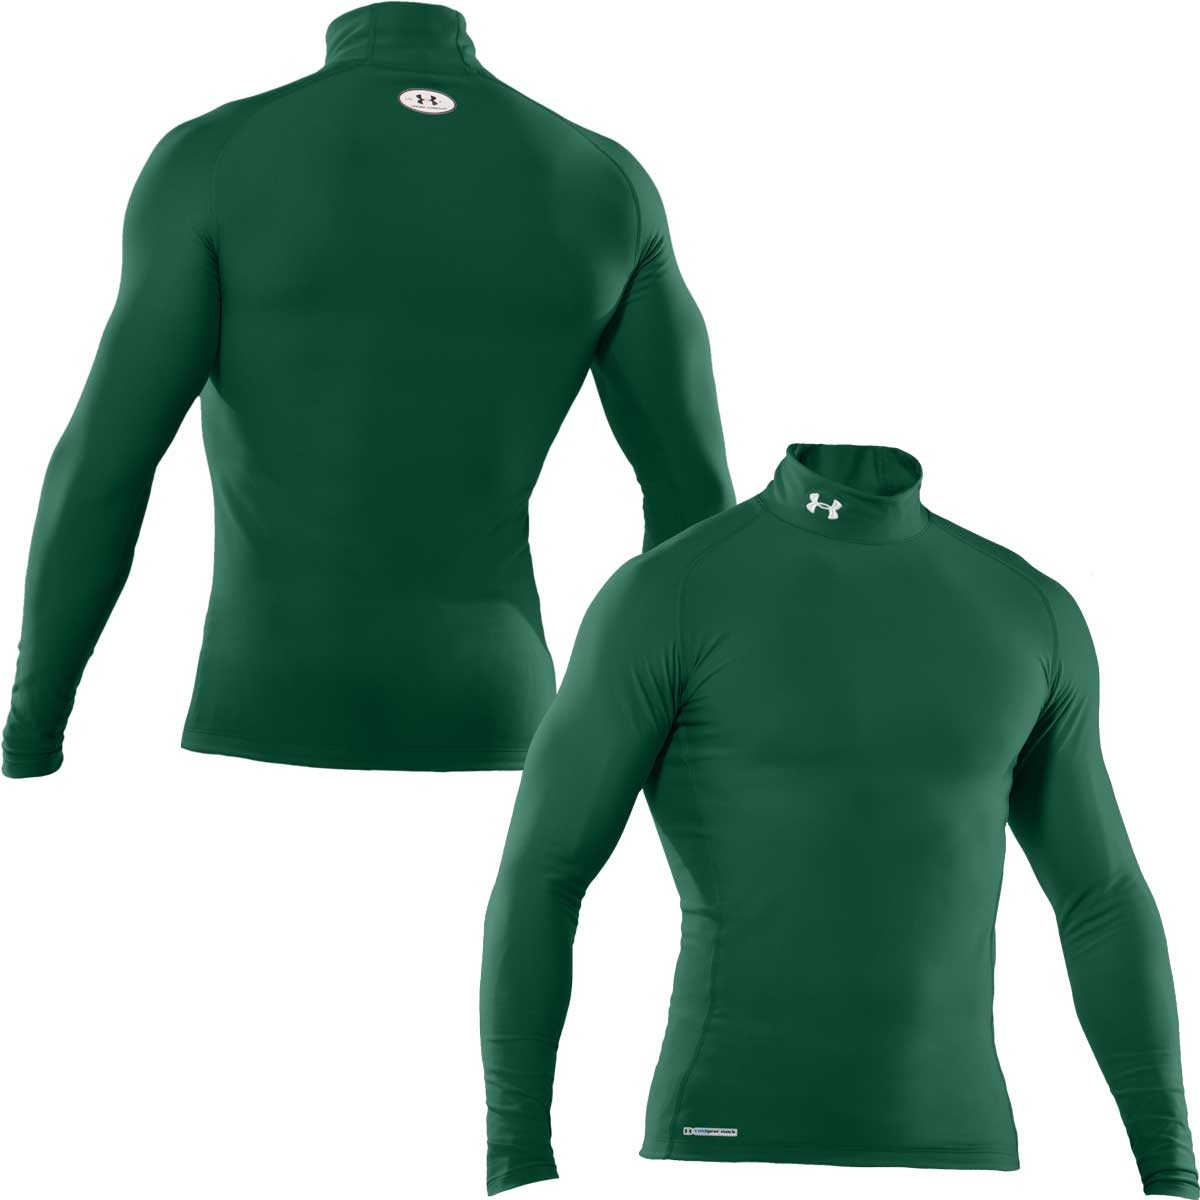 6f8b3f8ac Image of Under Armour EVO Coldgear Compression Mock - Mens - Forest  Green/White